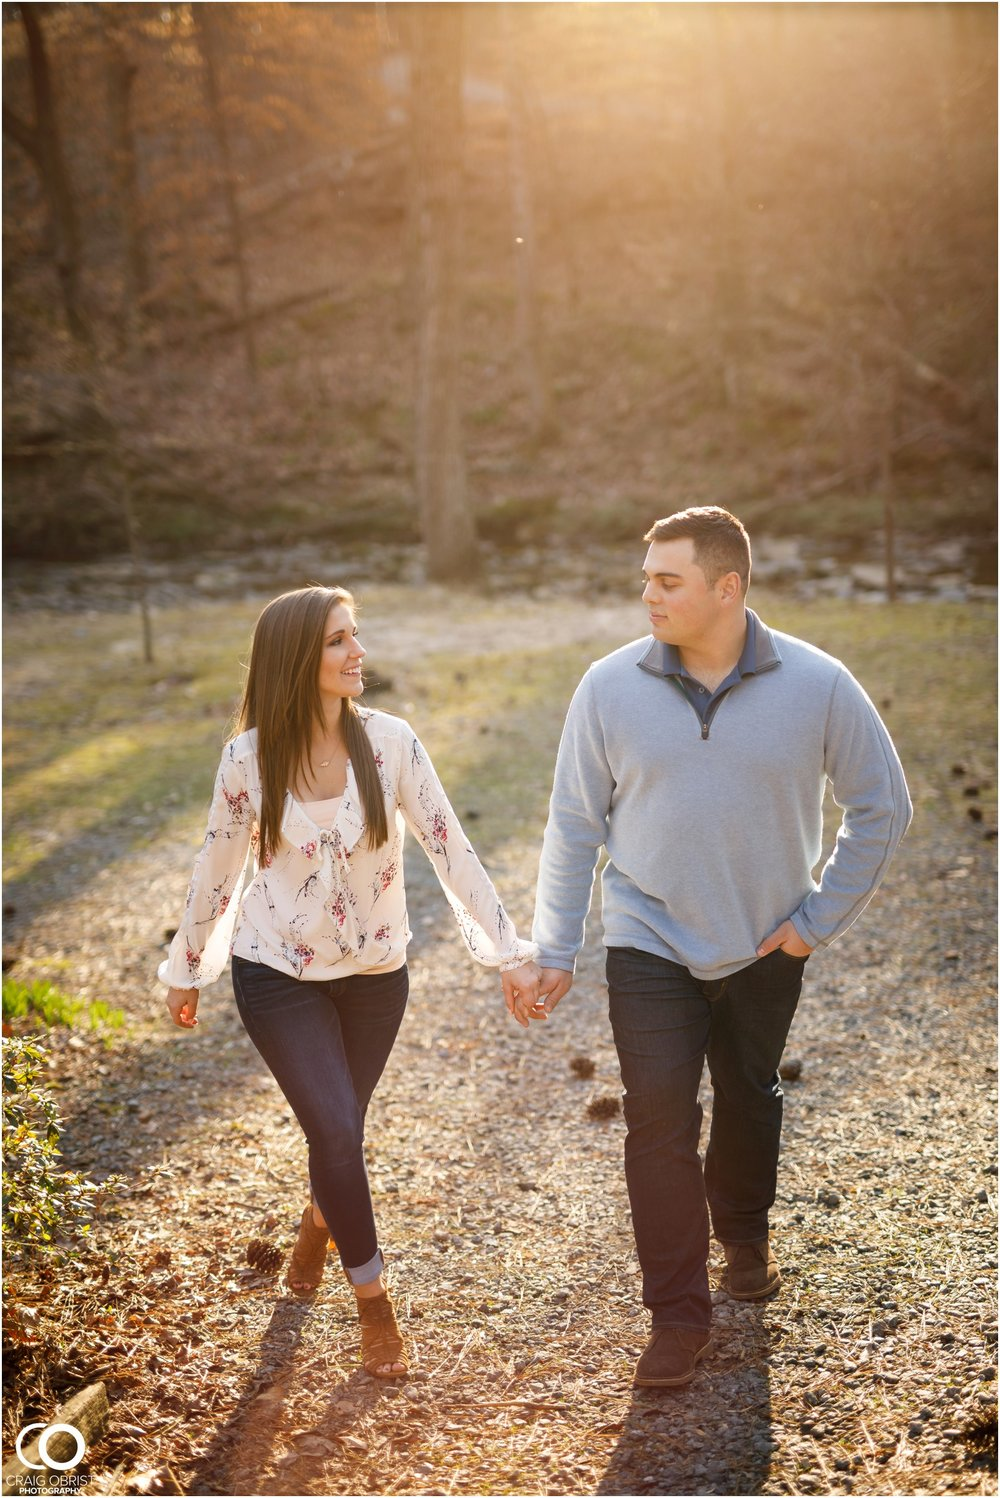 Life University Marietta GA Sunset Engagement Portraits_0013.jpg